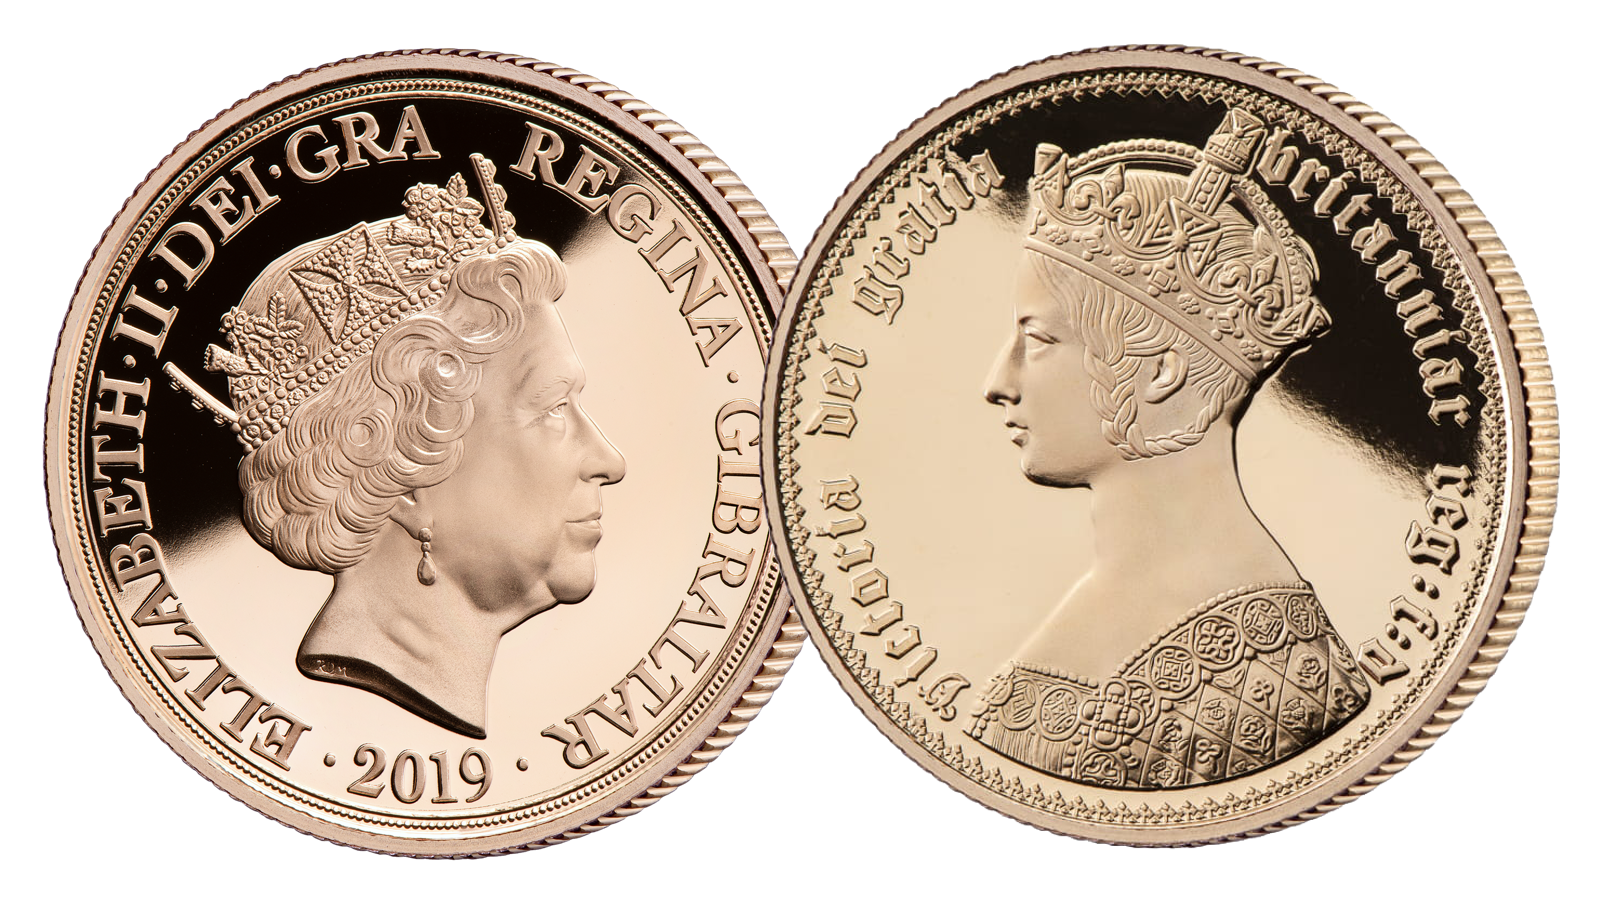 Queen Victoria 200th Anniversary Double Sovereign